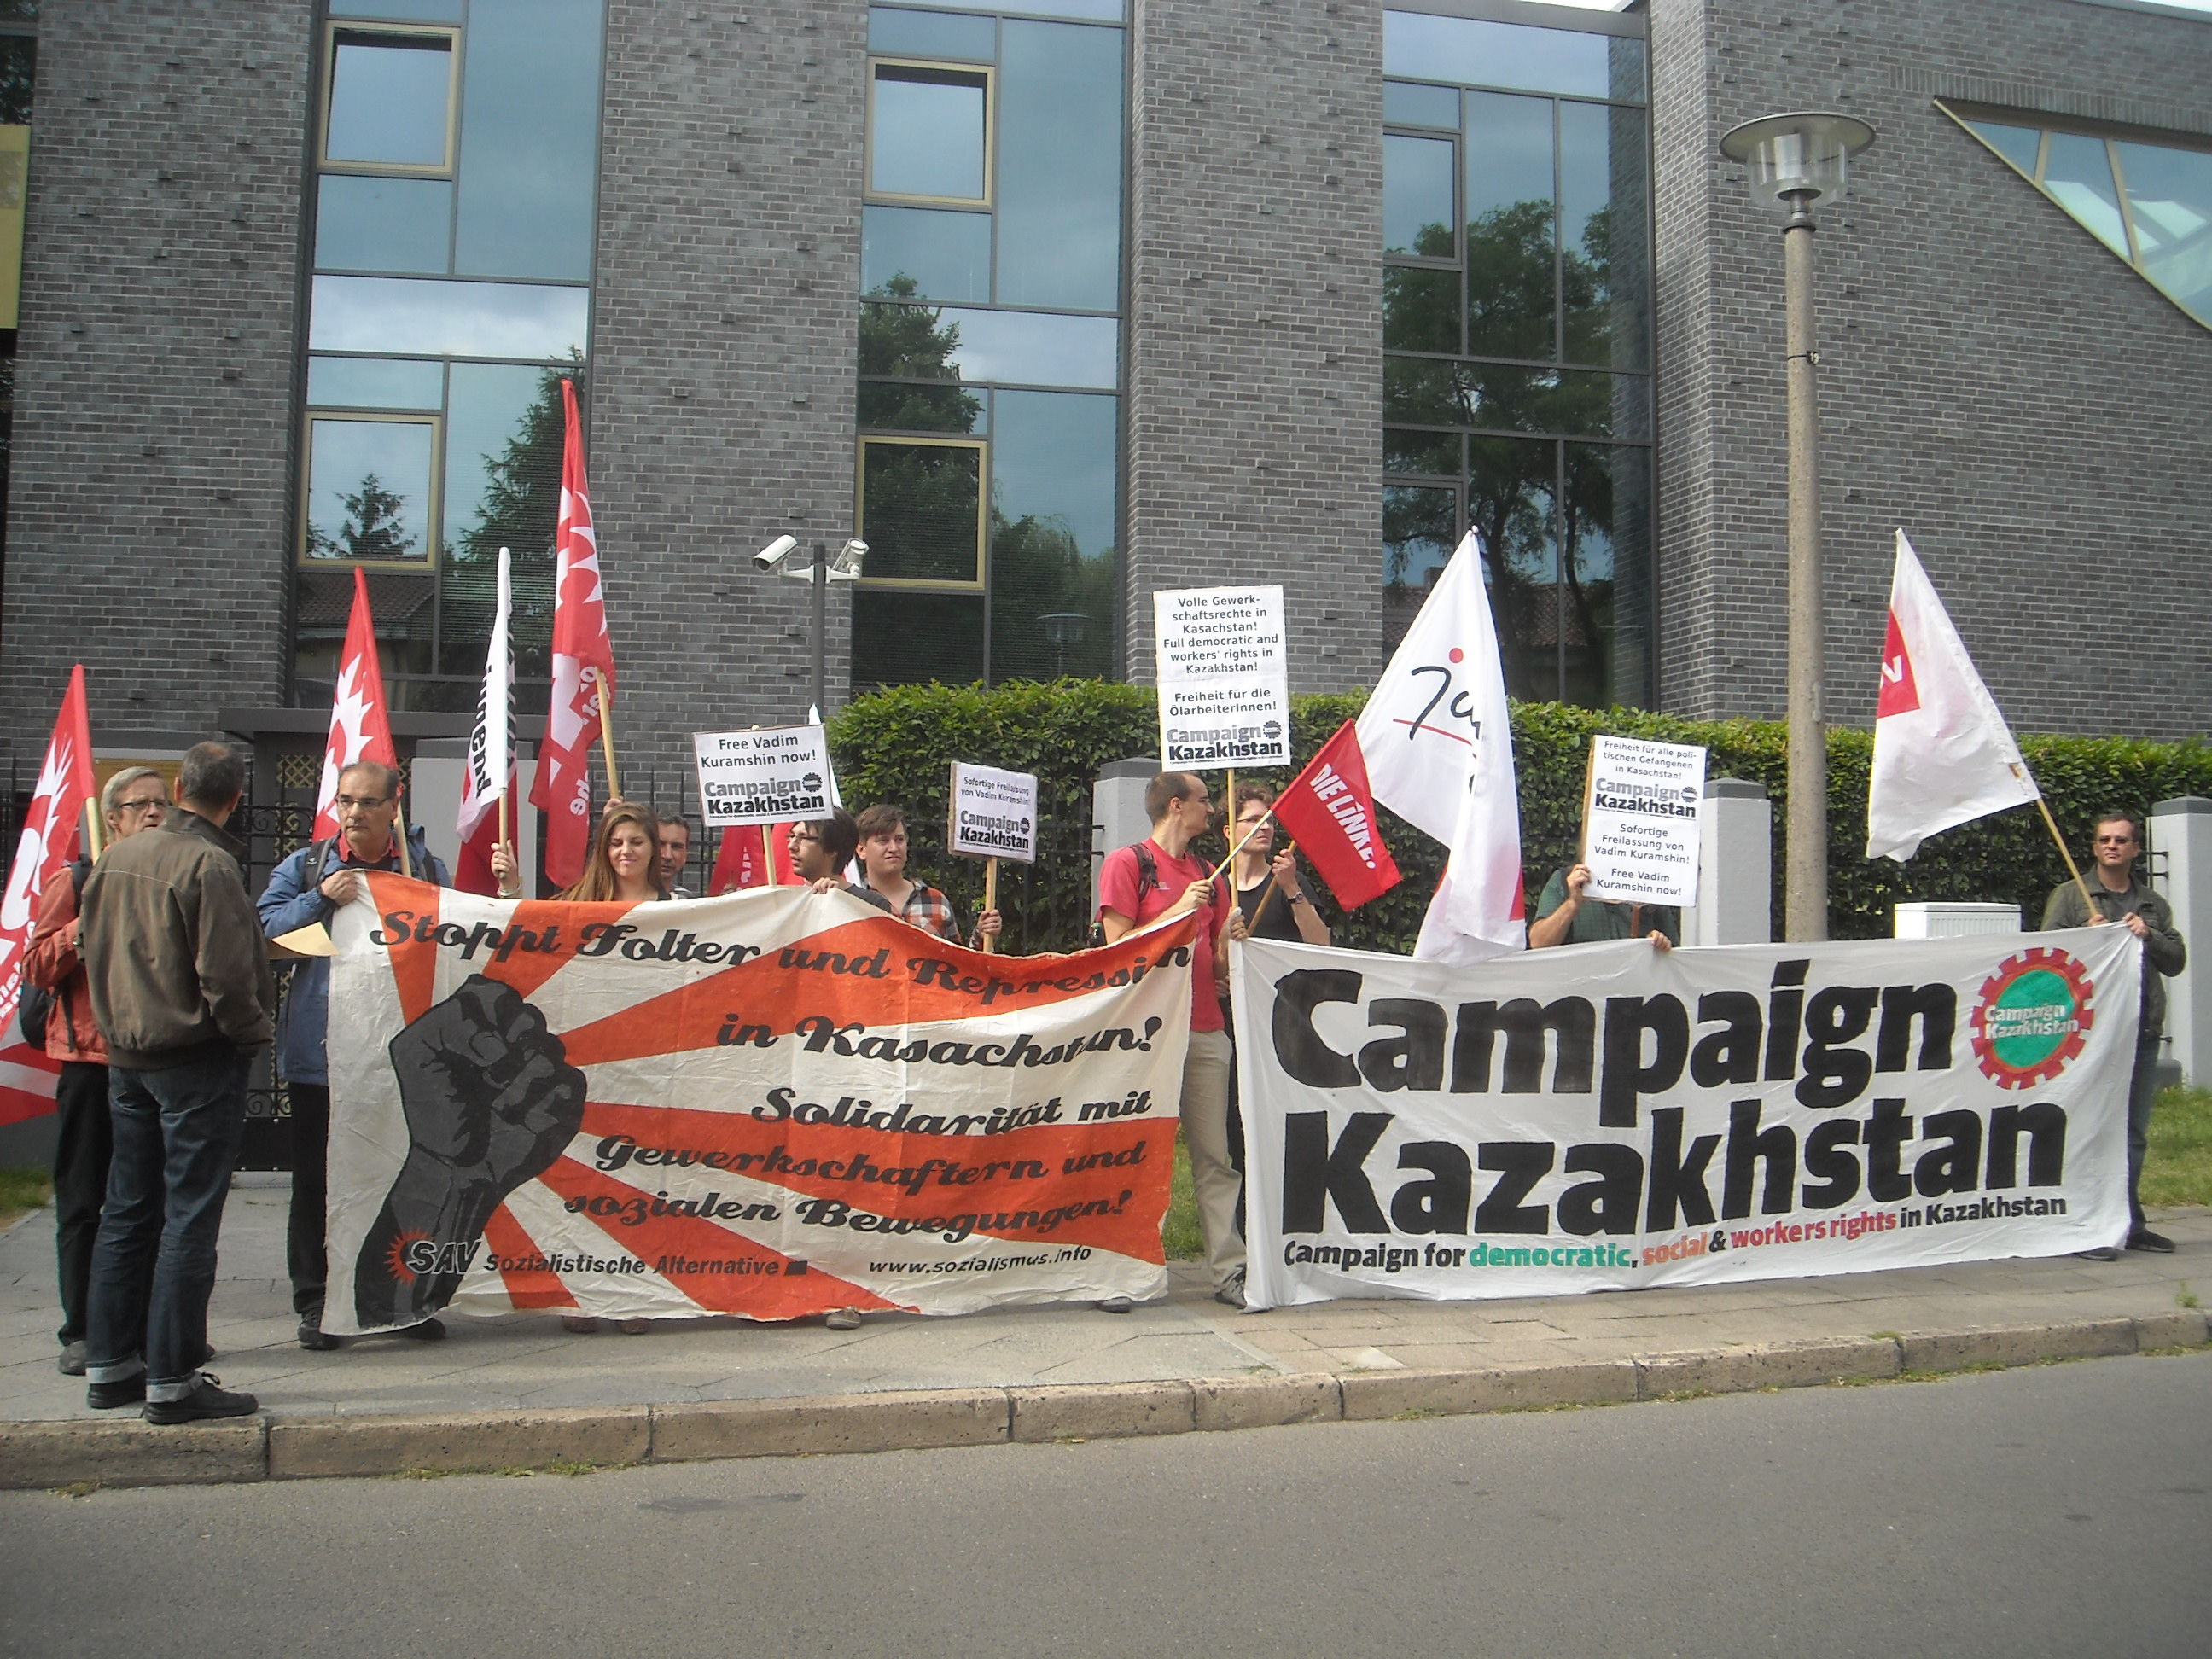 Protest against repression in West Kazakhstan in front of kazakh embassy in Berlin, Germany